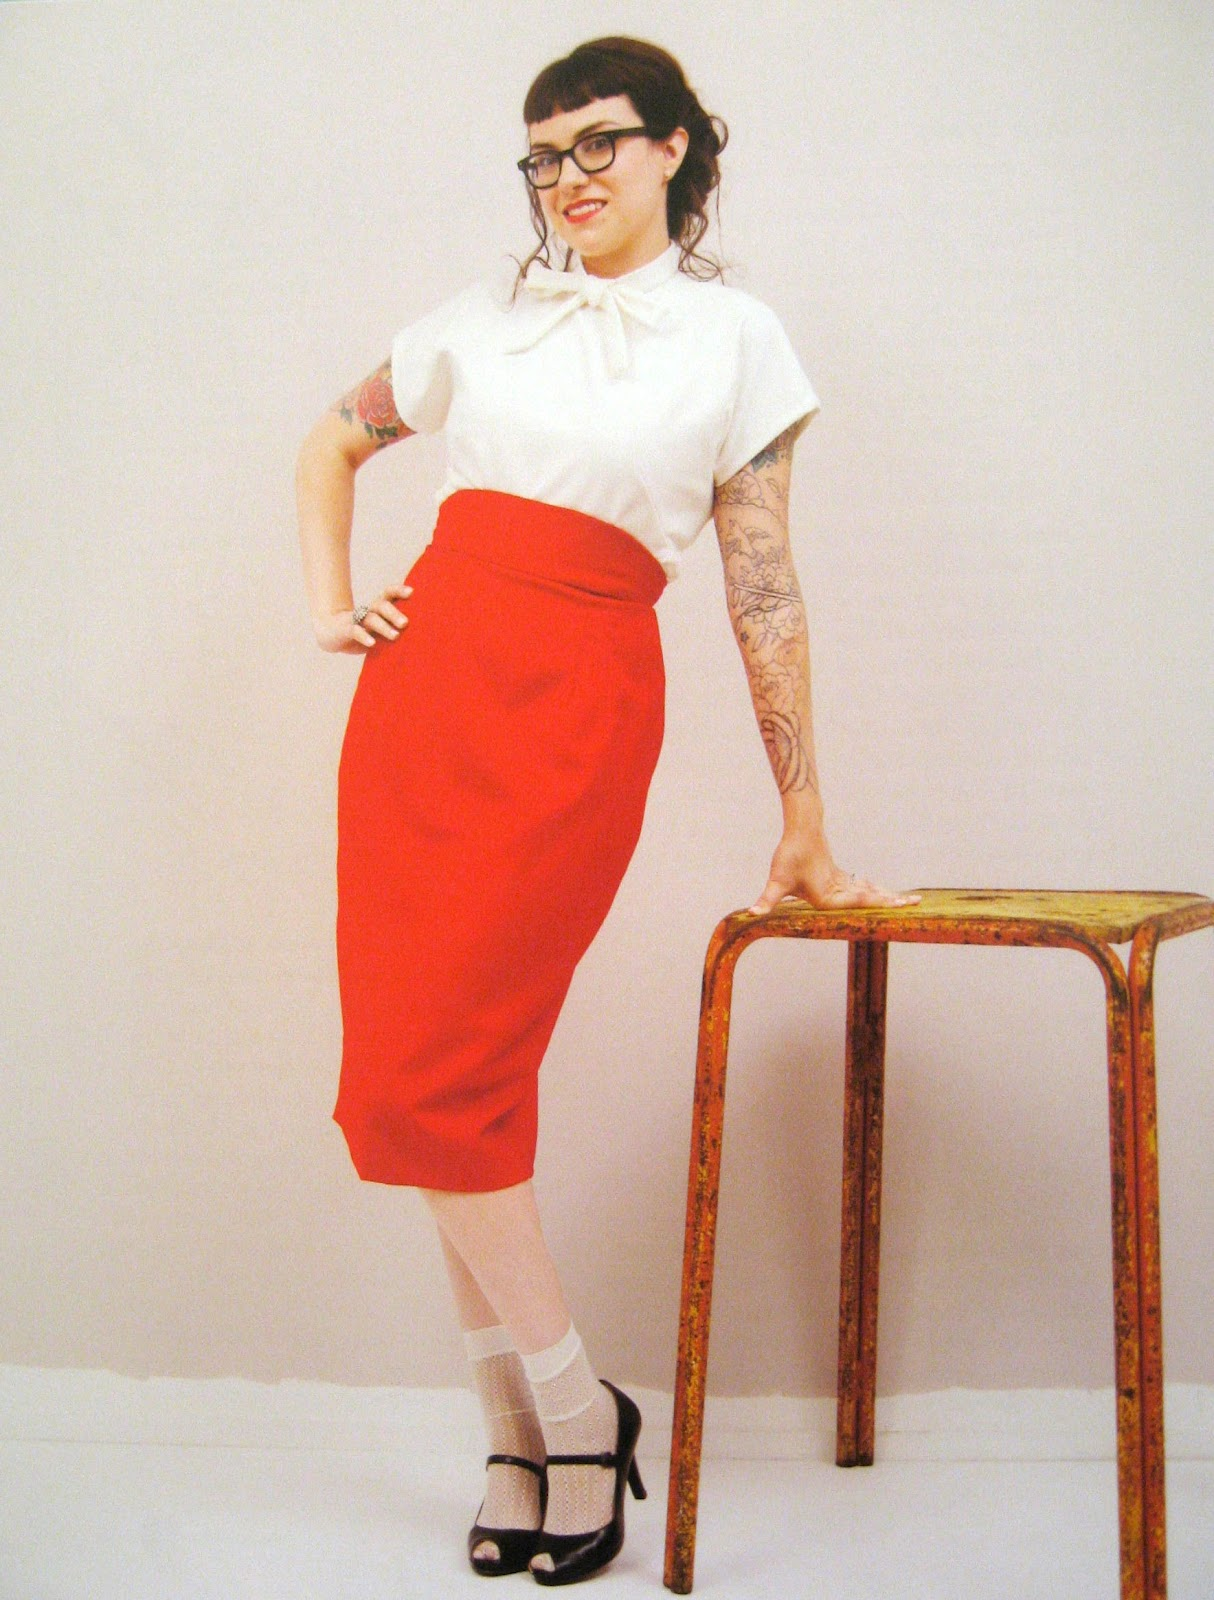 quirkyprettycute my pencil skirt thank you gertie